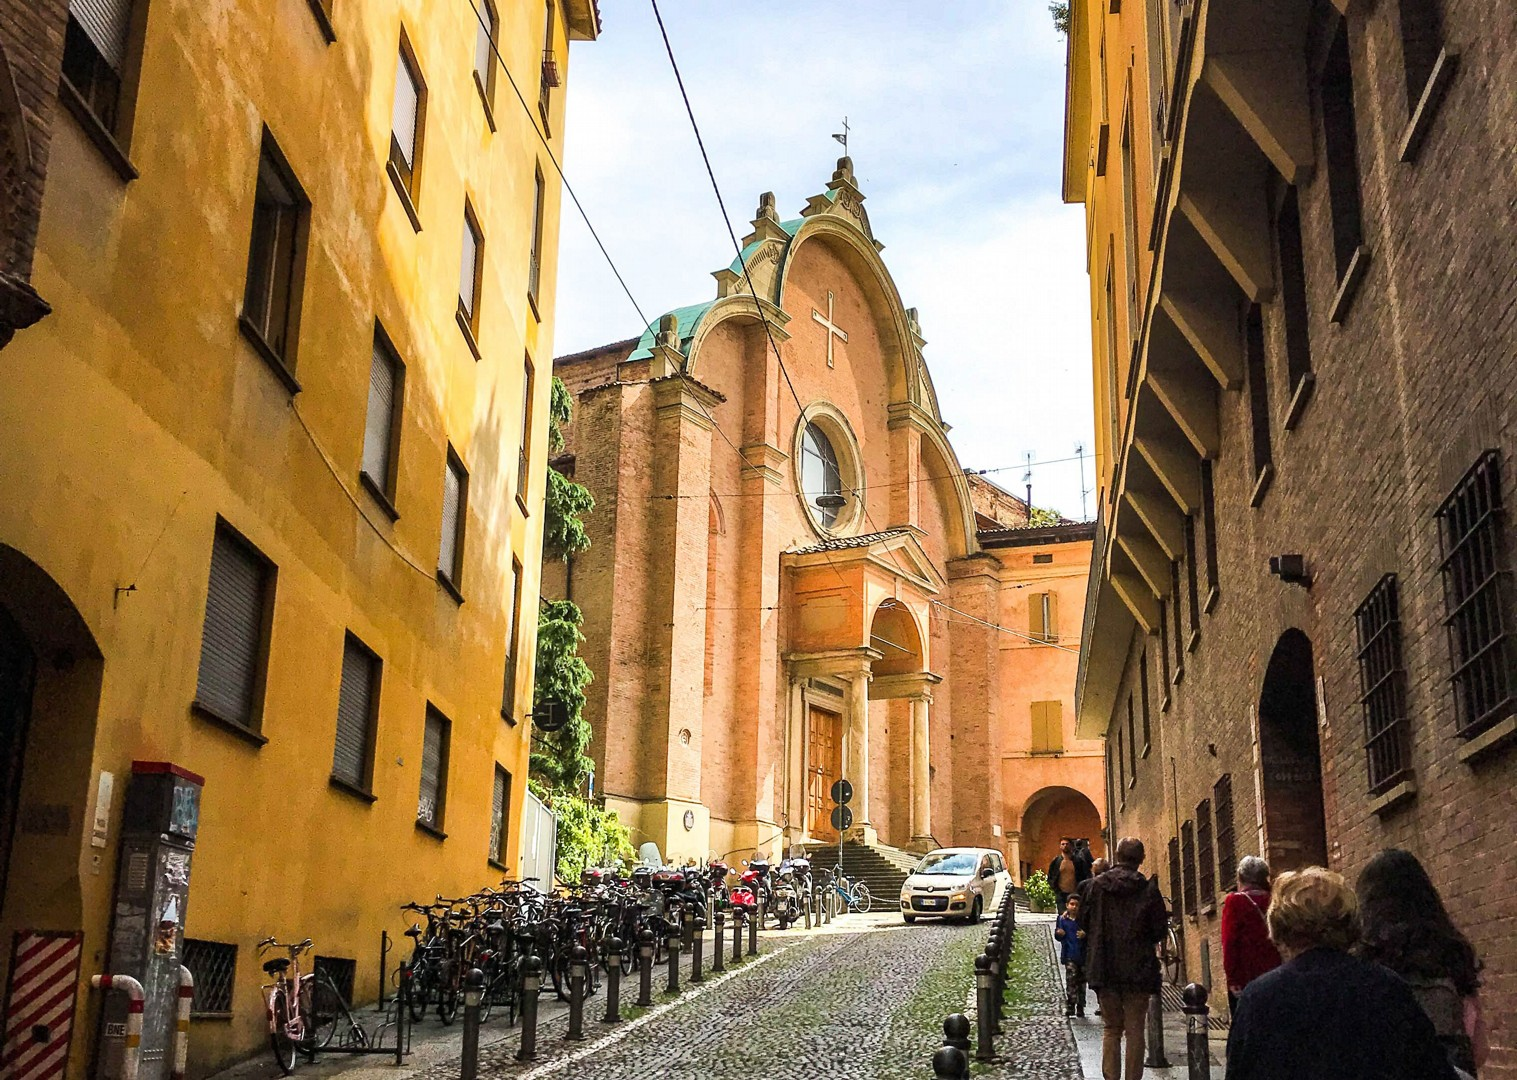 cycling-in-bologna-italy-self-guided-leisure-holiday-emilia-romagna.jpg - Italy - Emilia Romagna - Self-Guided Leisure Cycling Holiday - Leisure Cycling